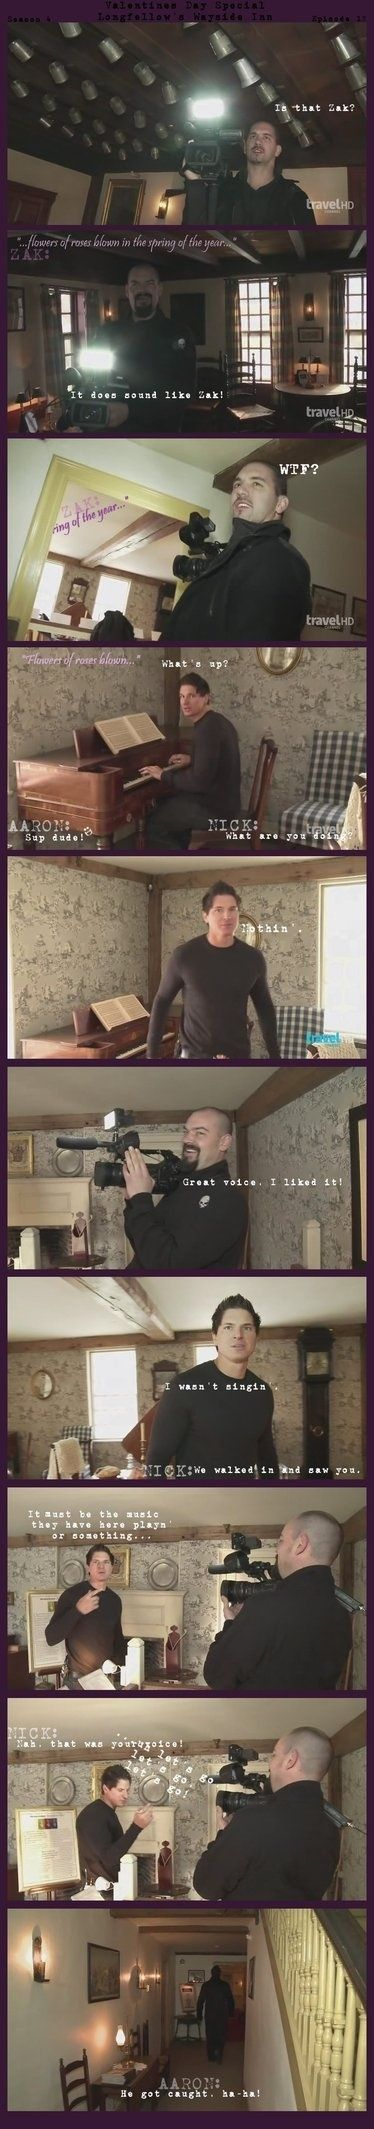 Ghost Adventures Wayside Inn, Valentine's Day.